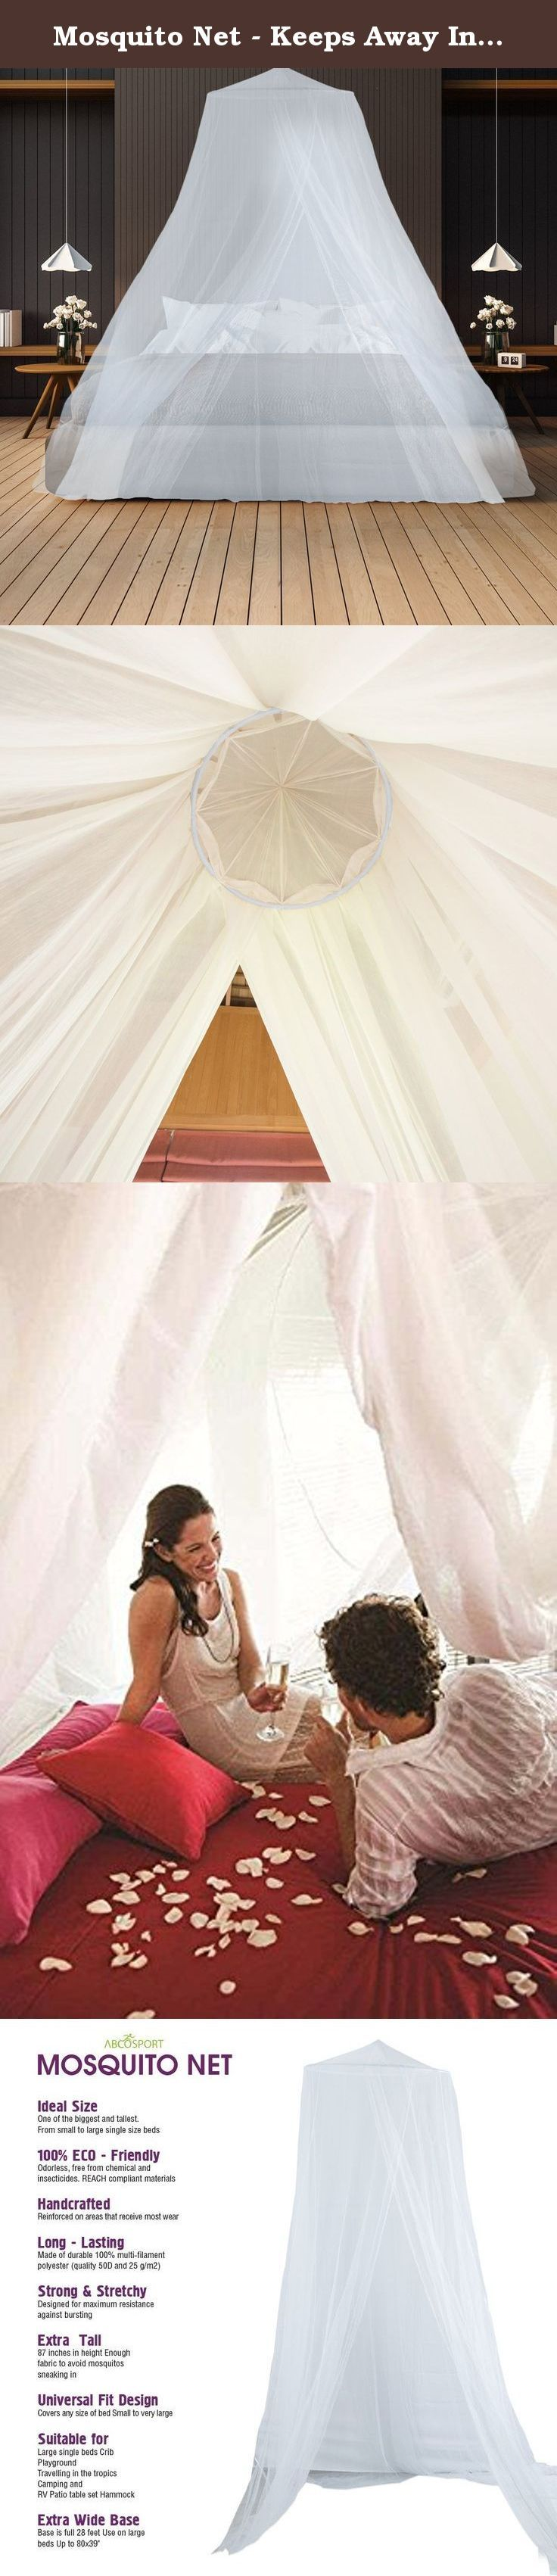 Mosquito Net - Keeps Away Insects & Flies - Perfect For Indoors And Outdoors, Playgrounds, Fits Most Size Beds, Cribs - Conical Design, Including Hanging Parts and a FREE Carry Bag To Carry Along. Are you looking for an effective mosquito protection for your bed or for a comfortable night's sleep during camping or any other travel? Are you looking for a net that has extremely small mesh size to prevent ingress of tiniest of mosquitoes, and is non-toxic, easy to use and easy to install?…